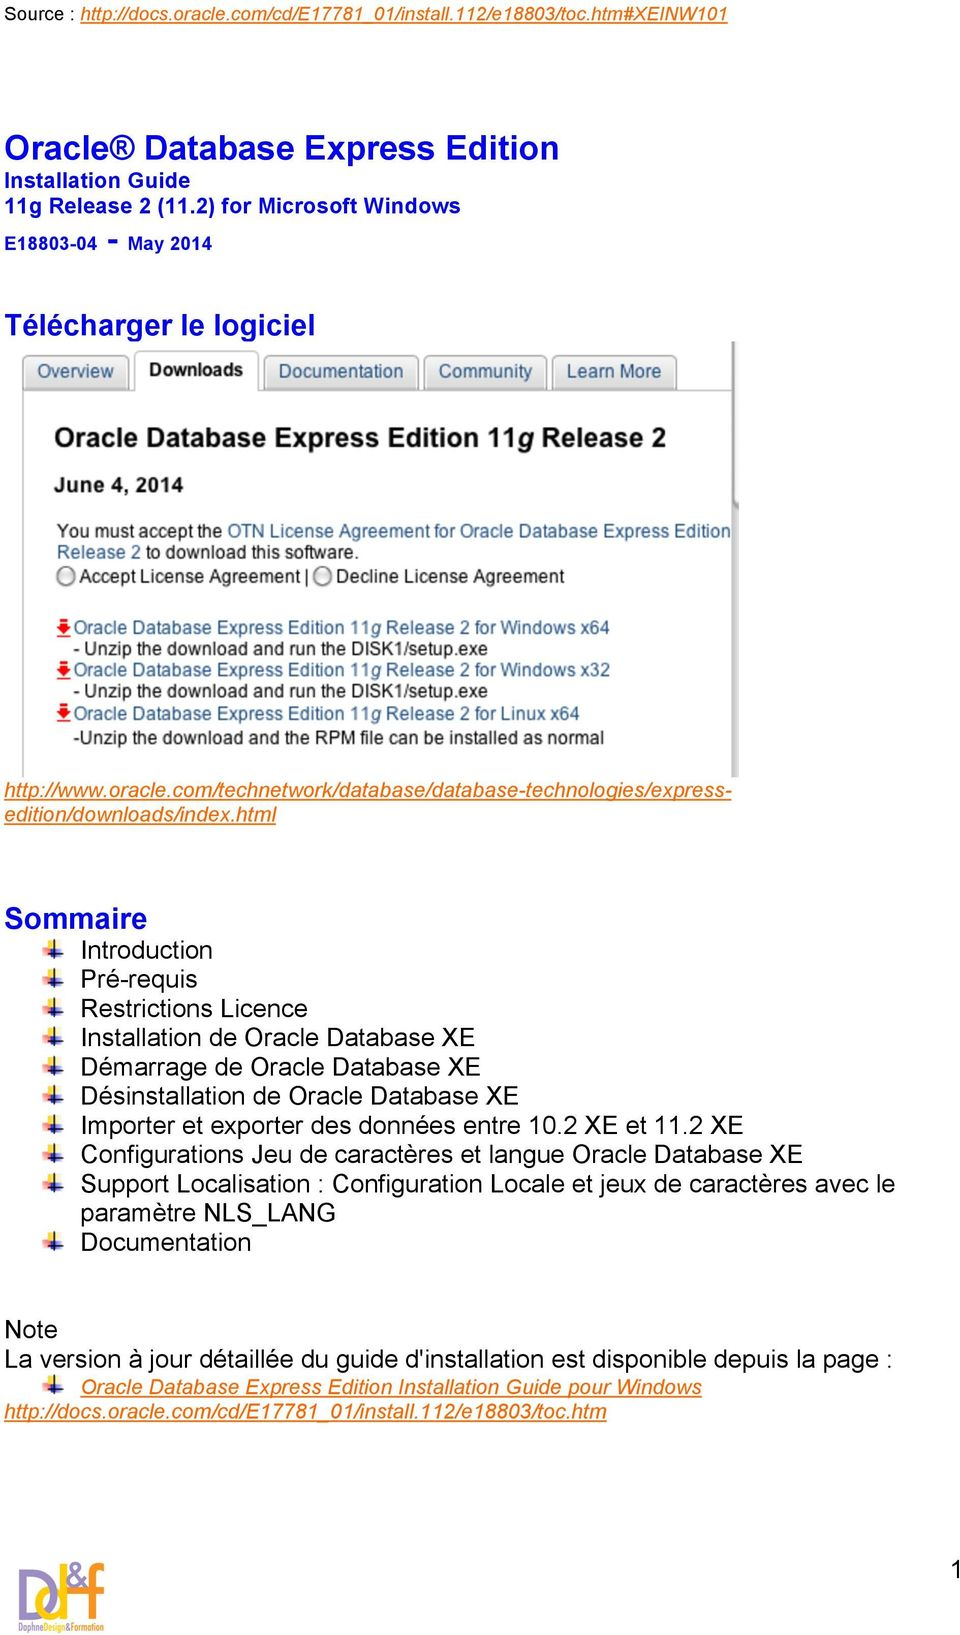 html Sommaire Introduction Pré-requis Restrictions Licence Installation de Oracle Database XE Démarrage de Oracle Database XE Désinstallation de Oracle Database XE Importer et exporter des données